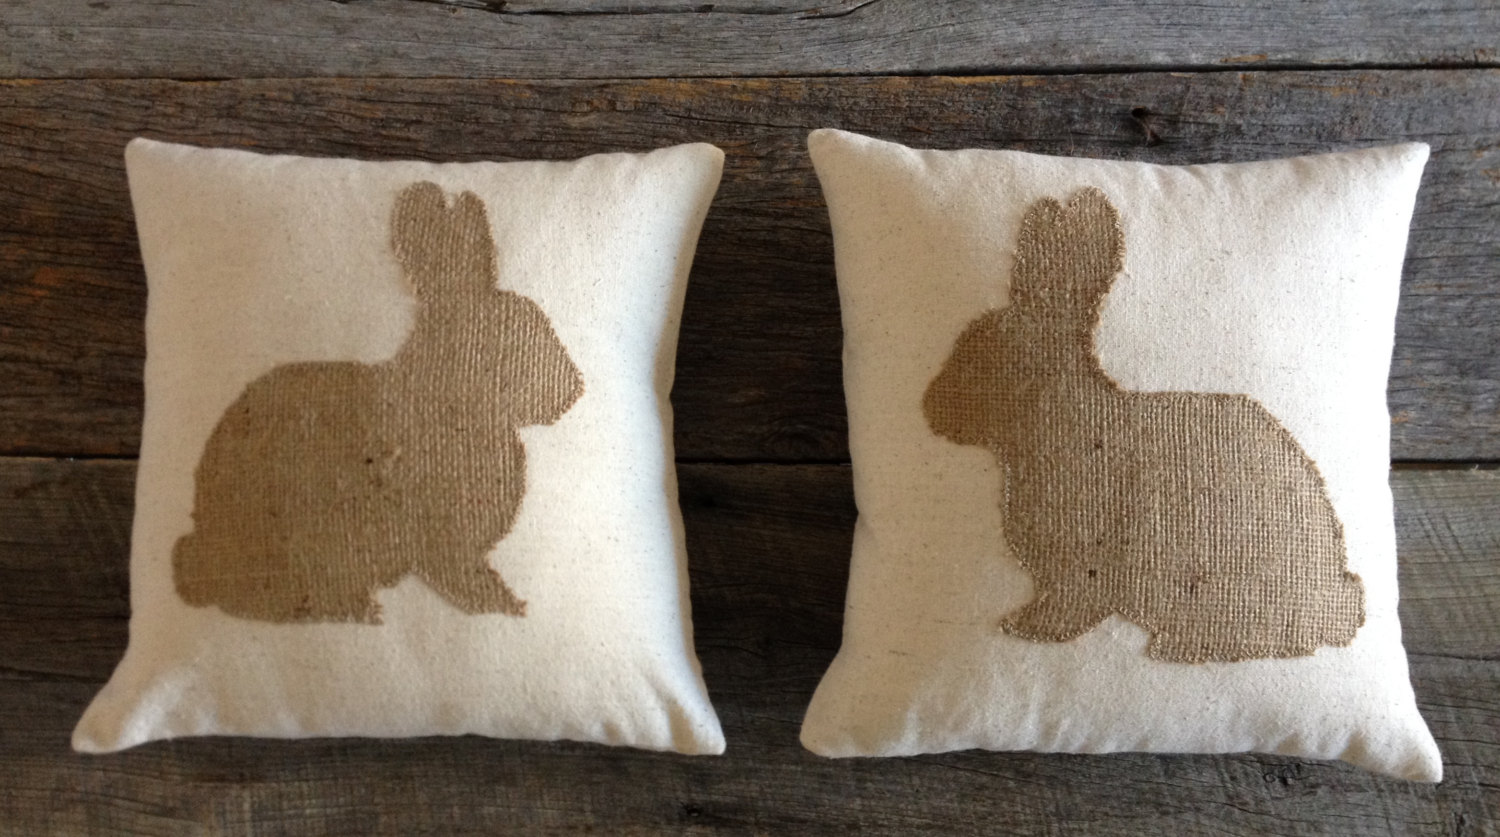 16 Adorable Handmade Decorative Easter Pillows - Style Motivation